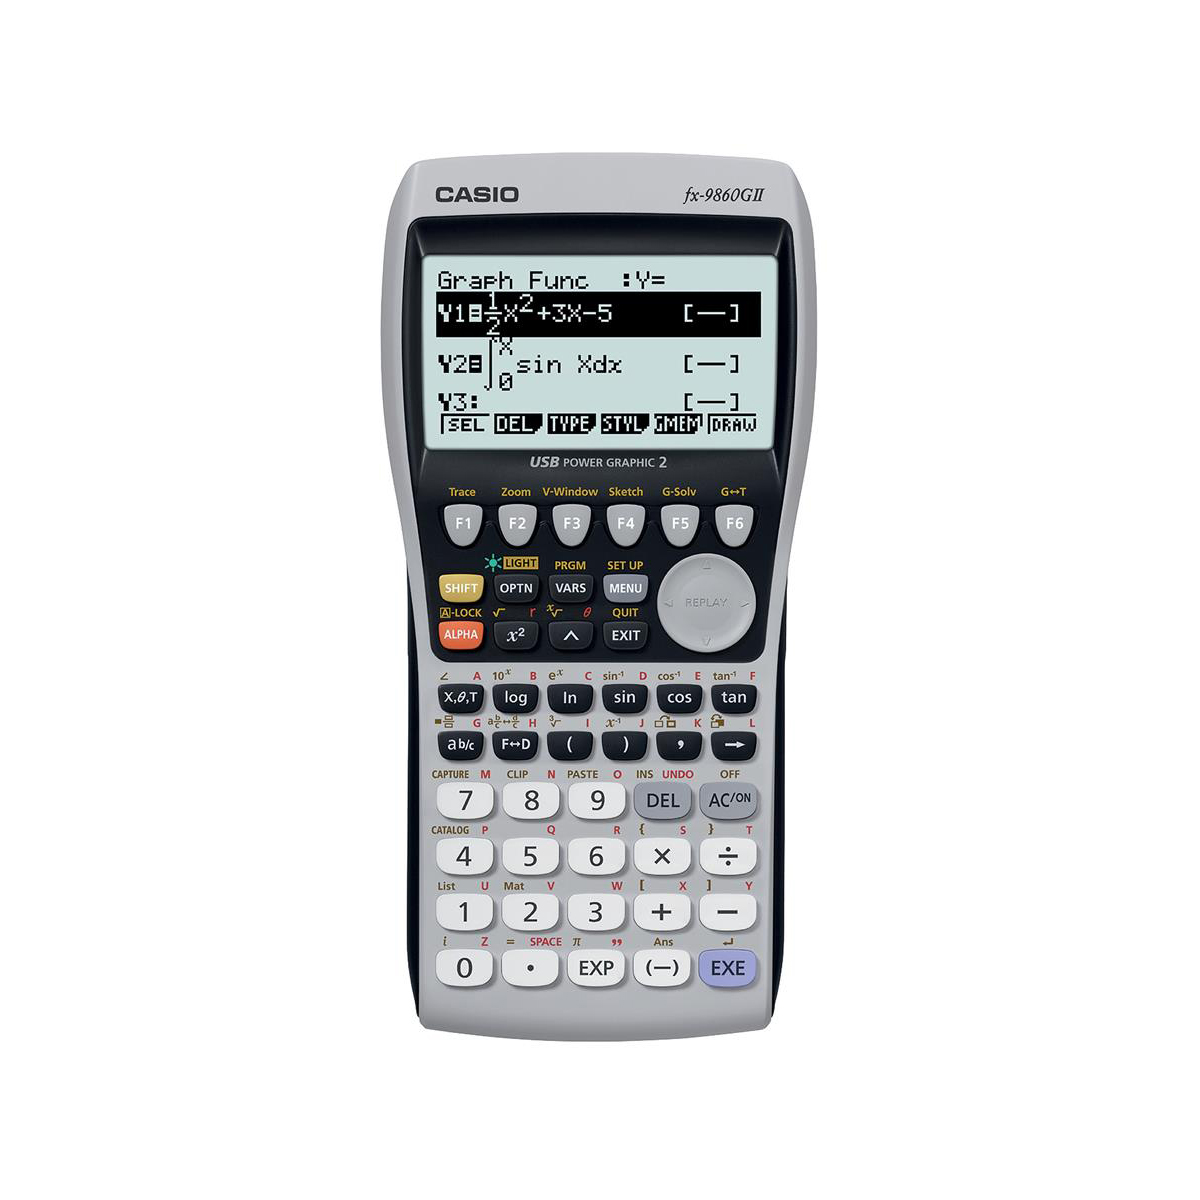 Casio Graphic Calculator Natural Textbook Display with USB 91.5x21.2x184mm Grey Ref FX-9860GII